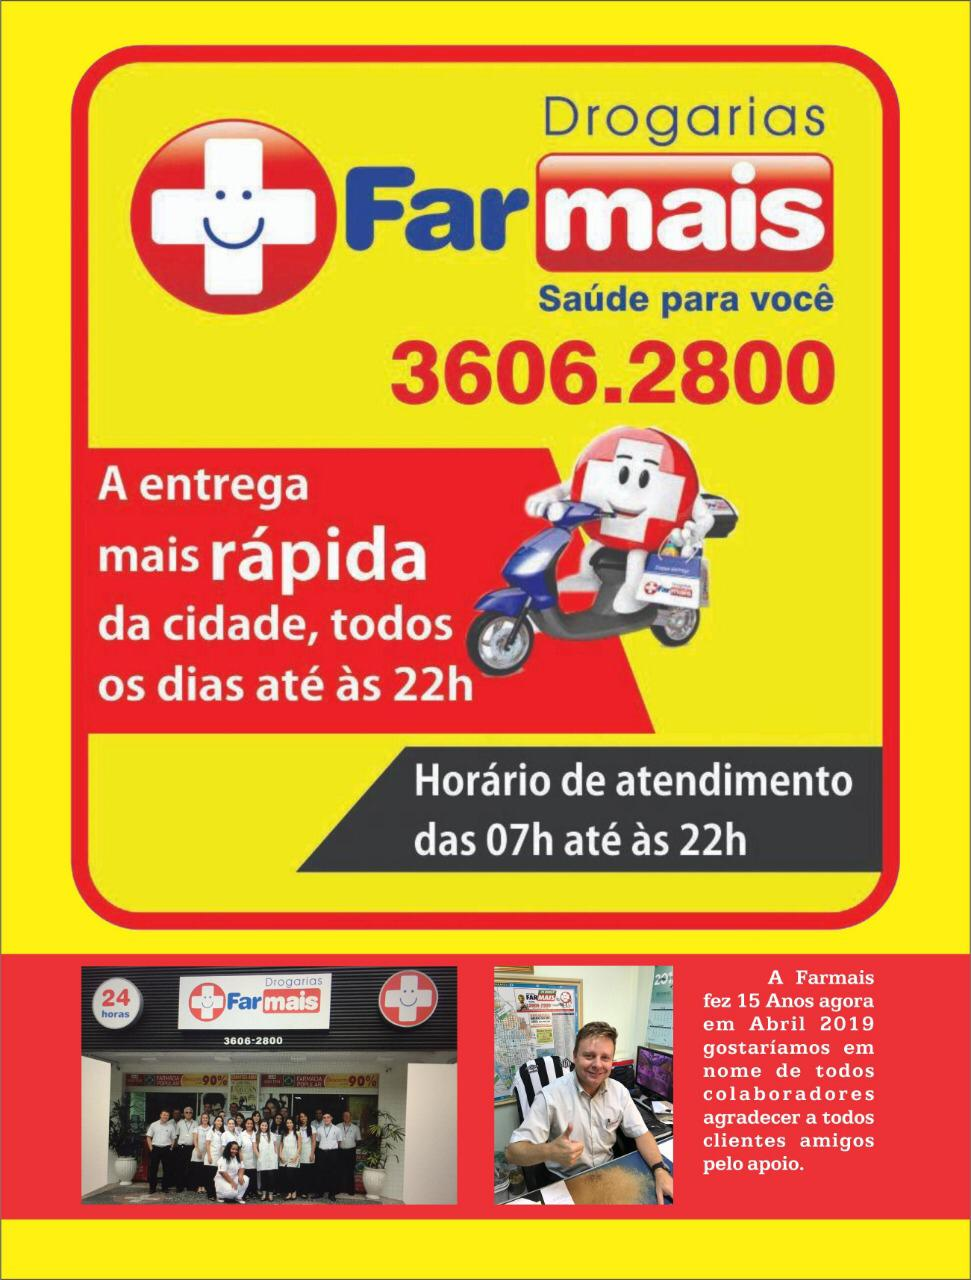 DROGARIAS FARMAIS